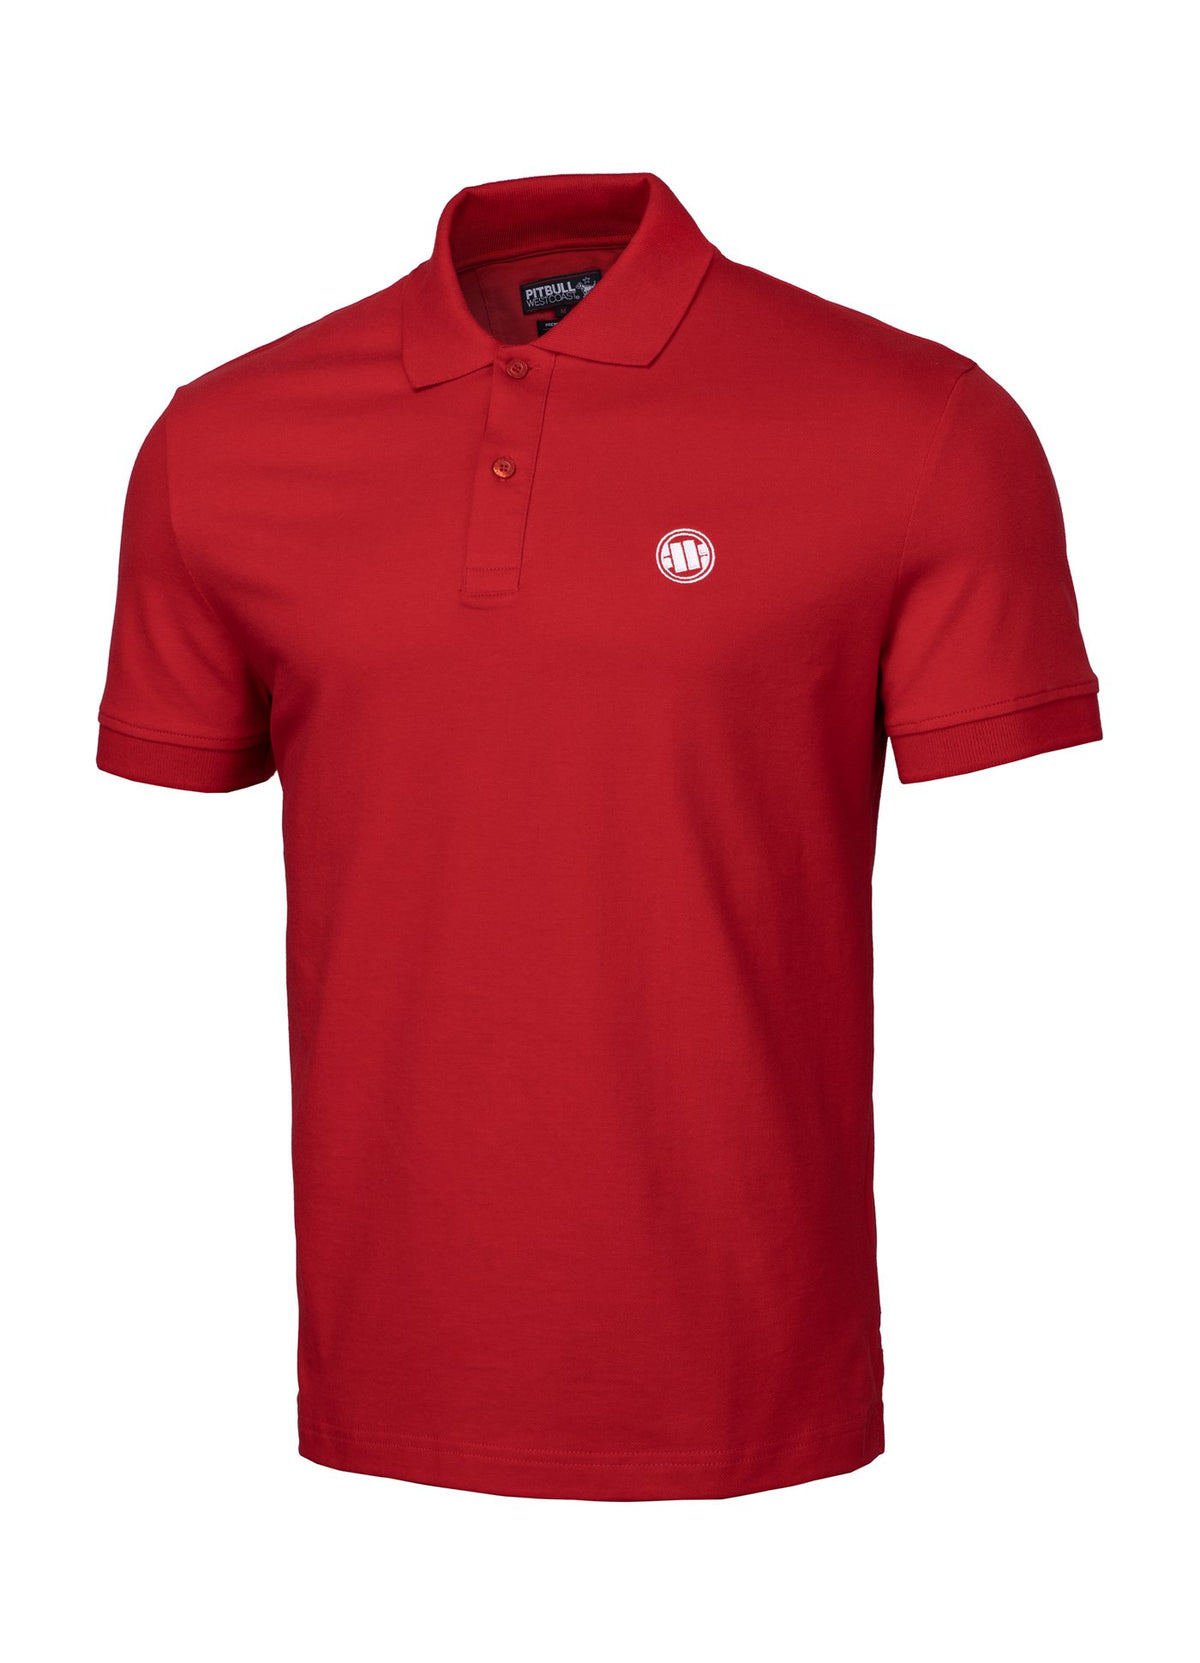 T-shirt POLO REGULAR Red - Pitbull West Coast U.S.A.